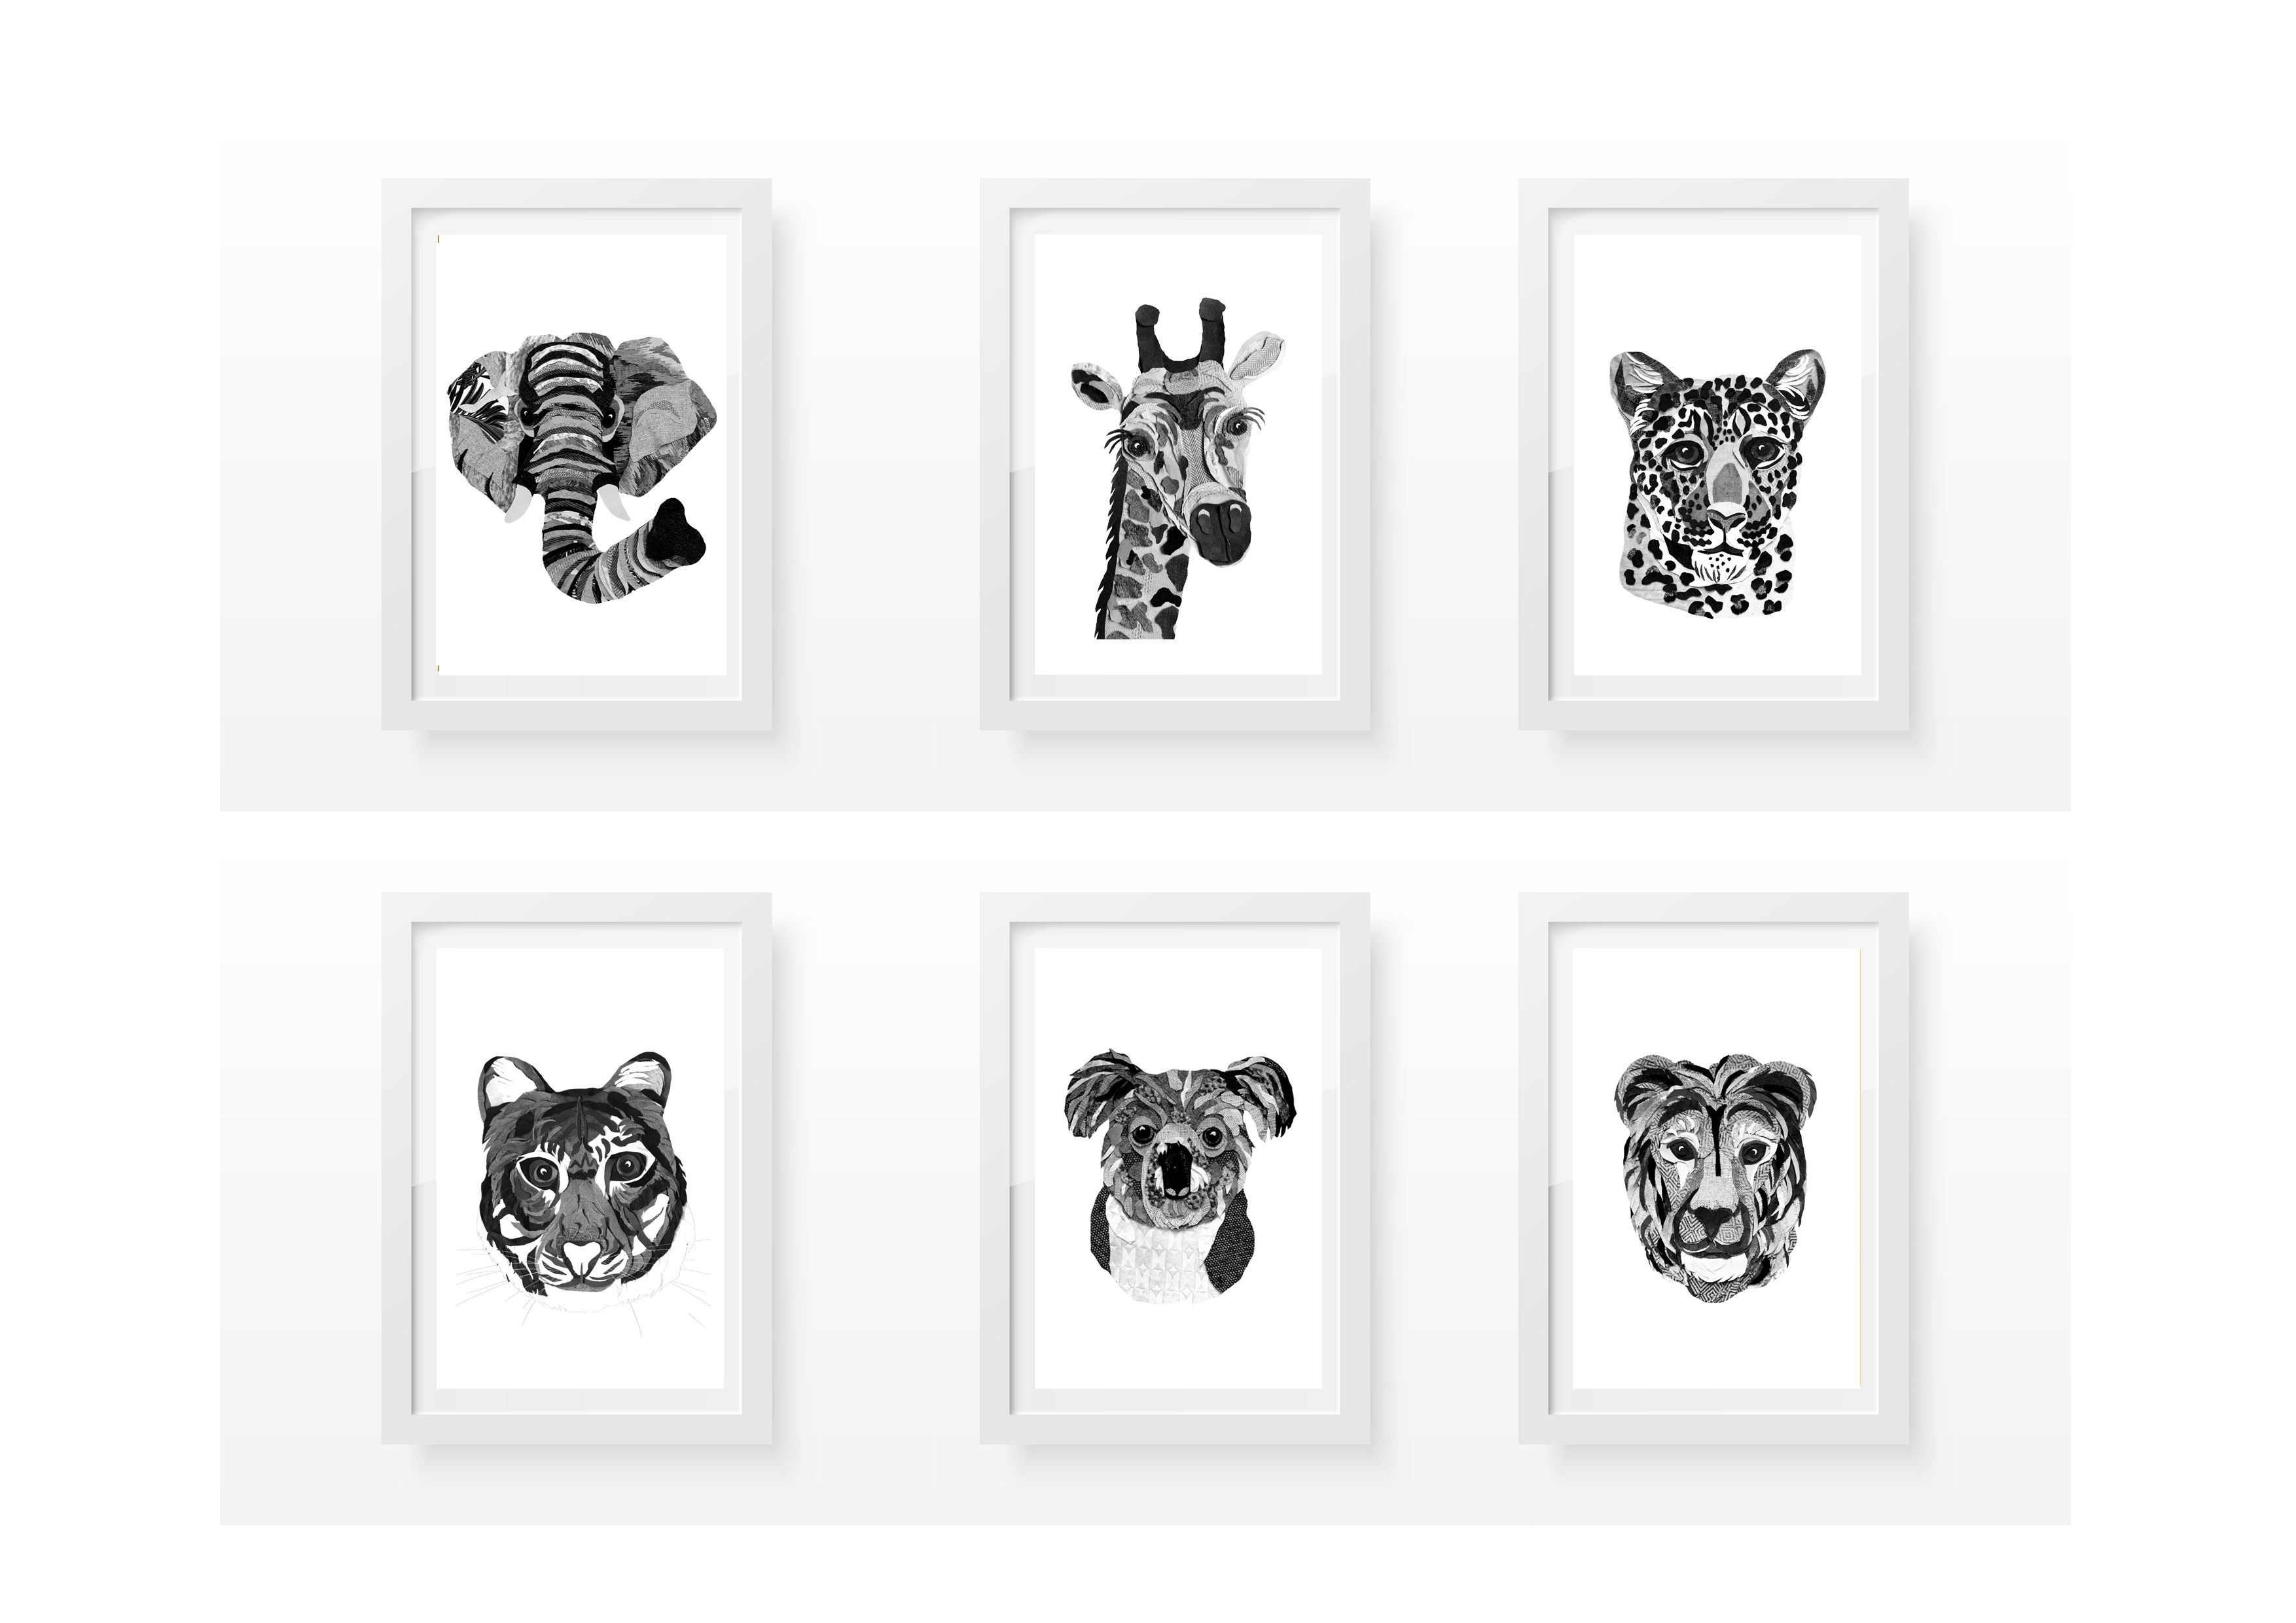 Monochrome Prints